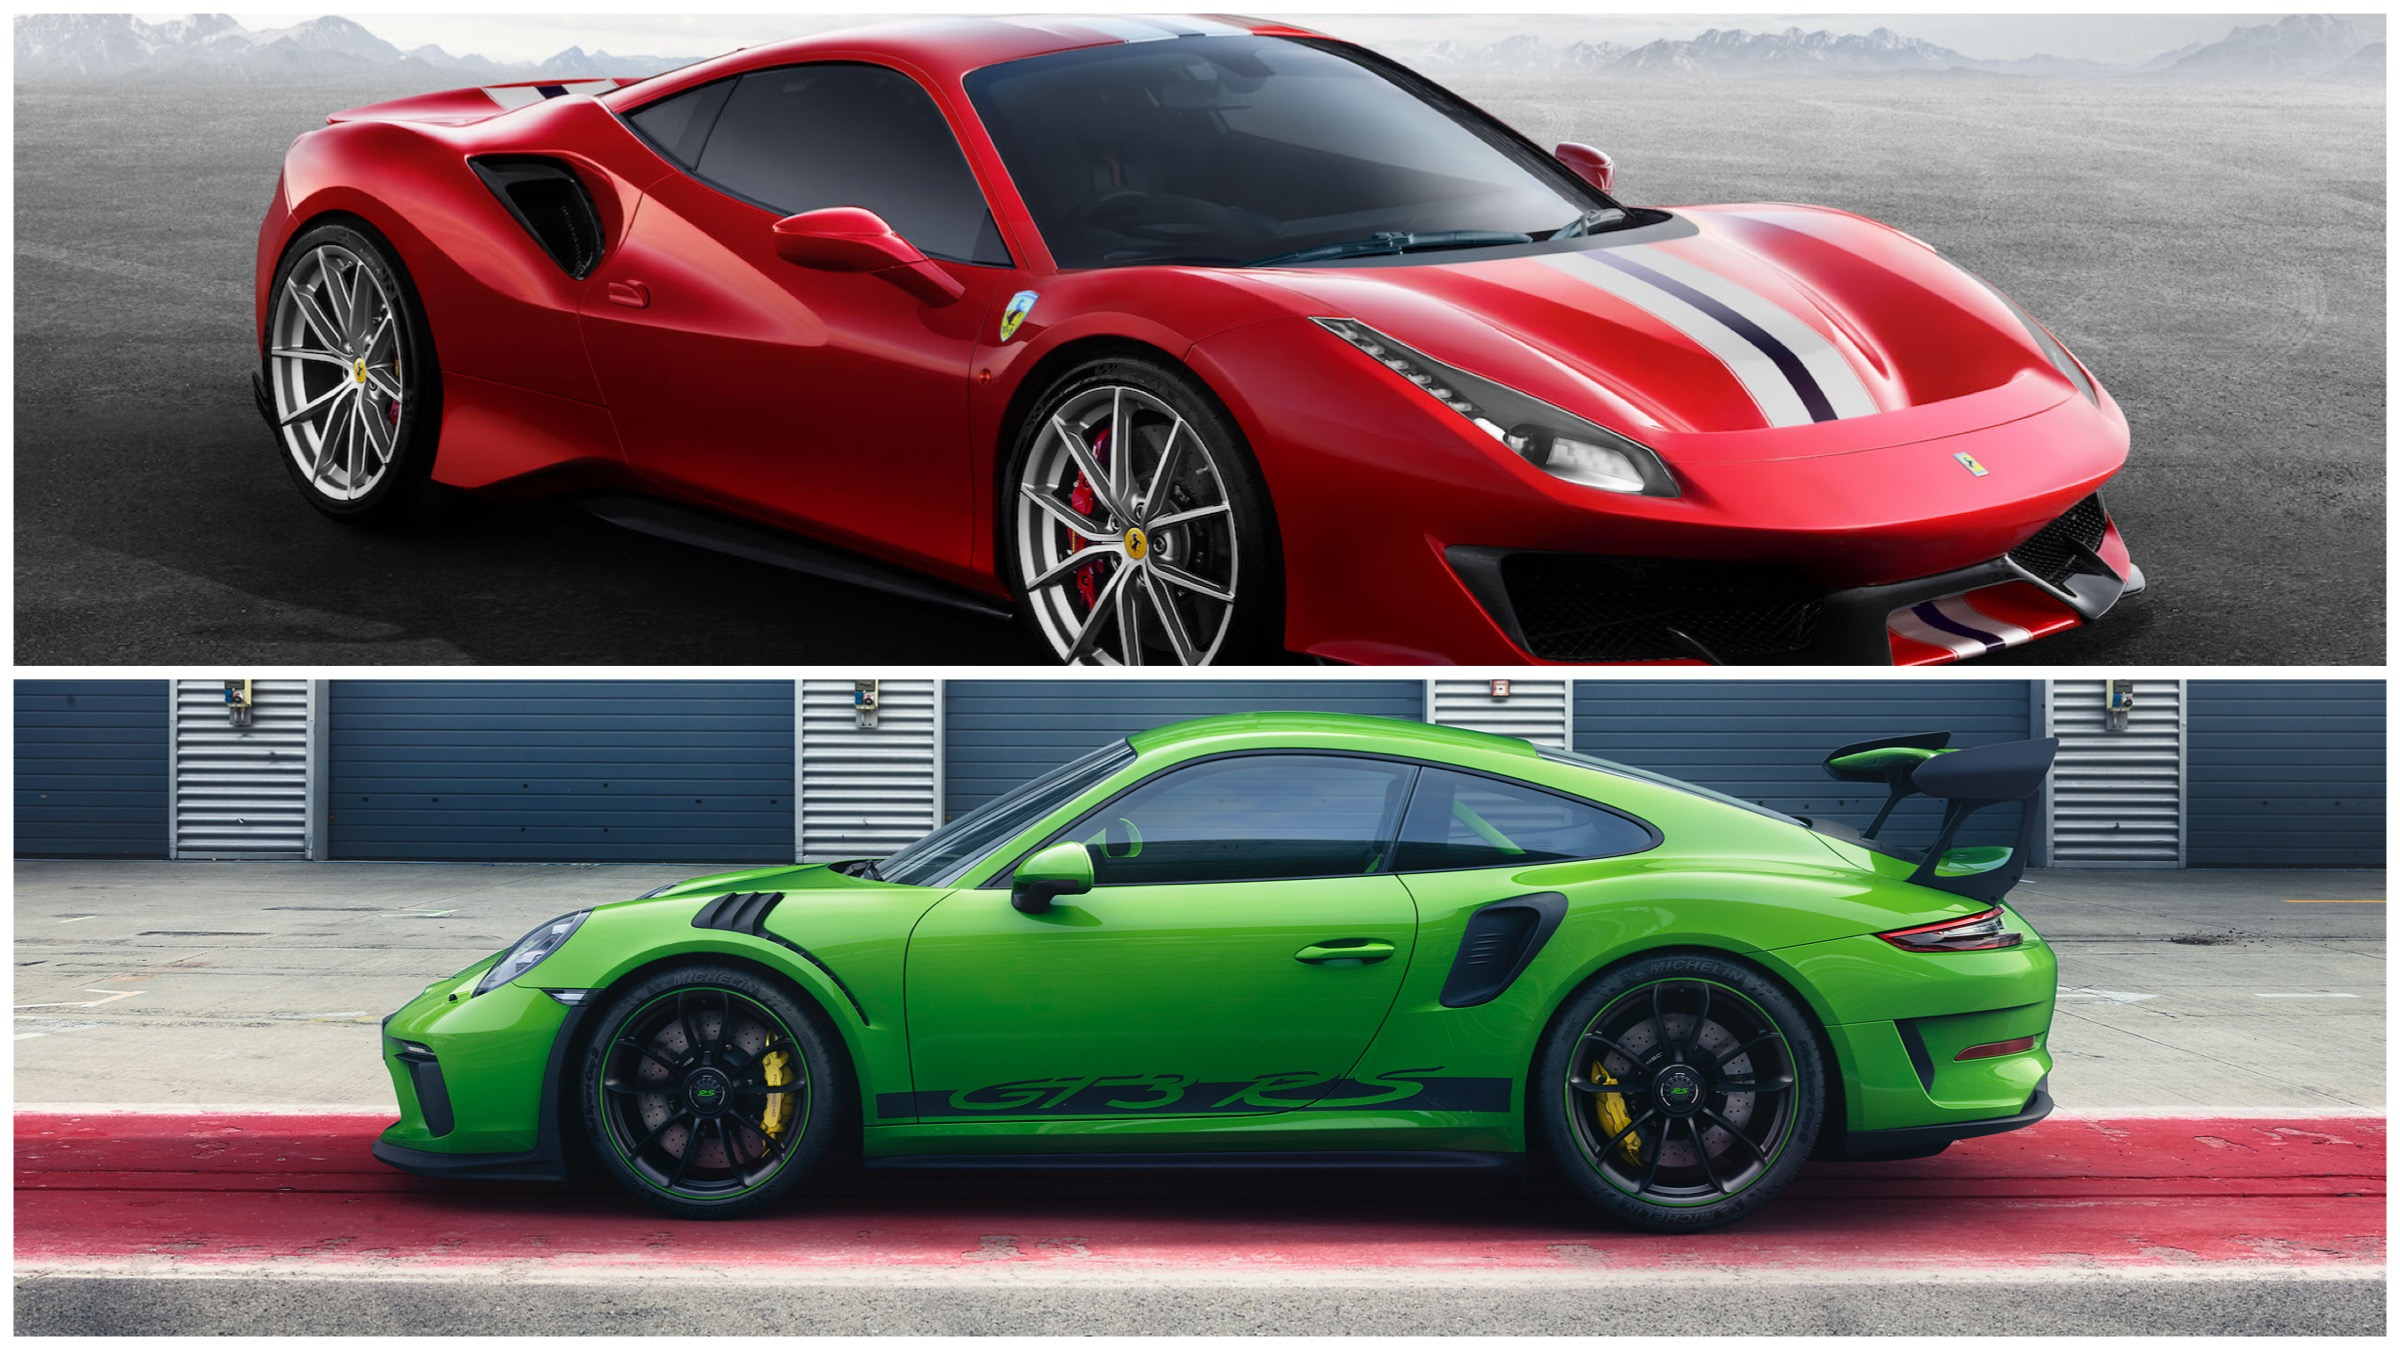 Ferrari And Porsche Announce New Cars For The Wealthy Track Addict